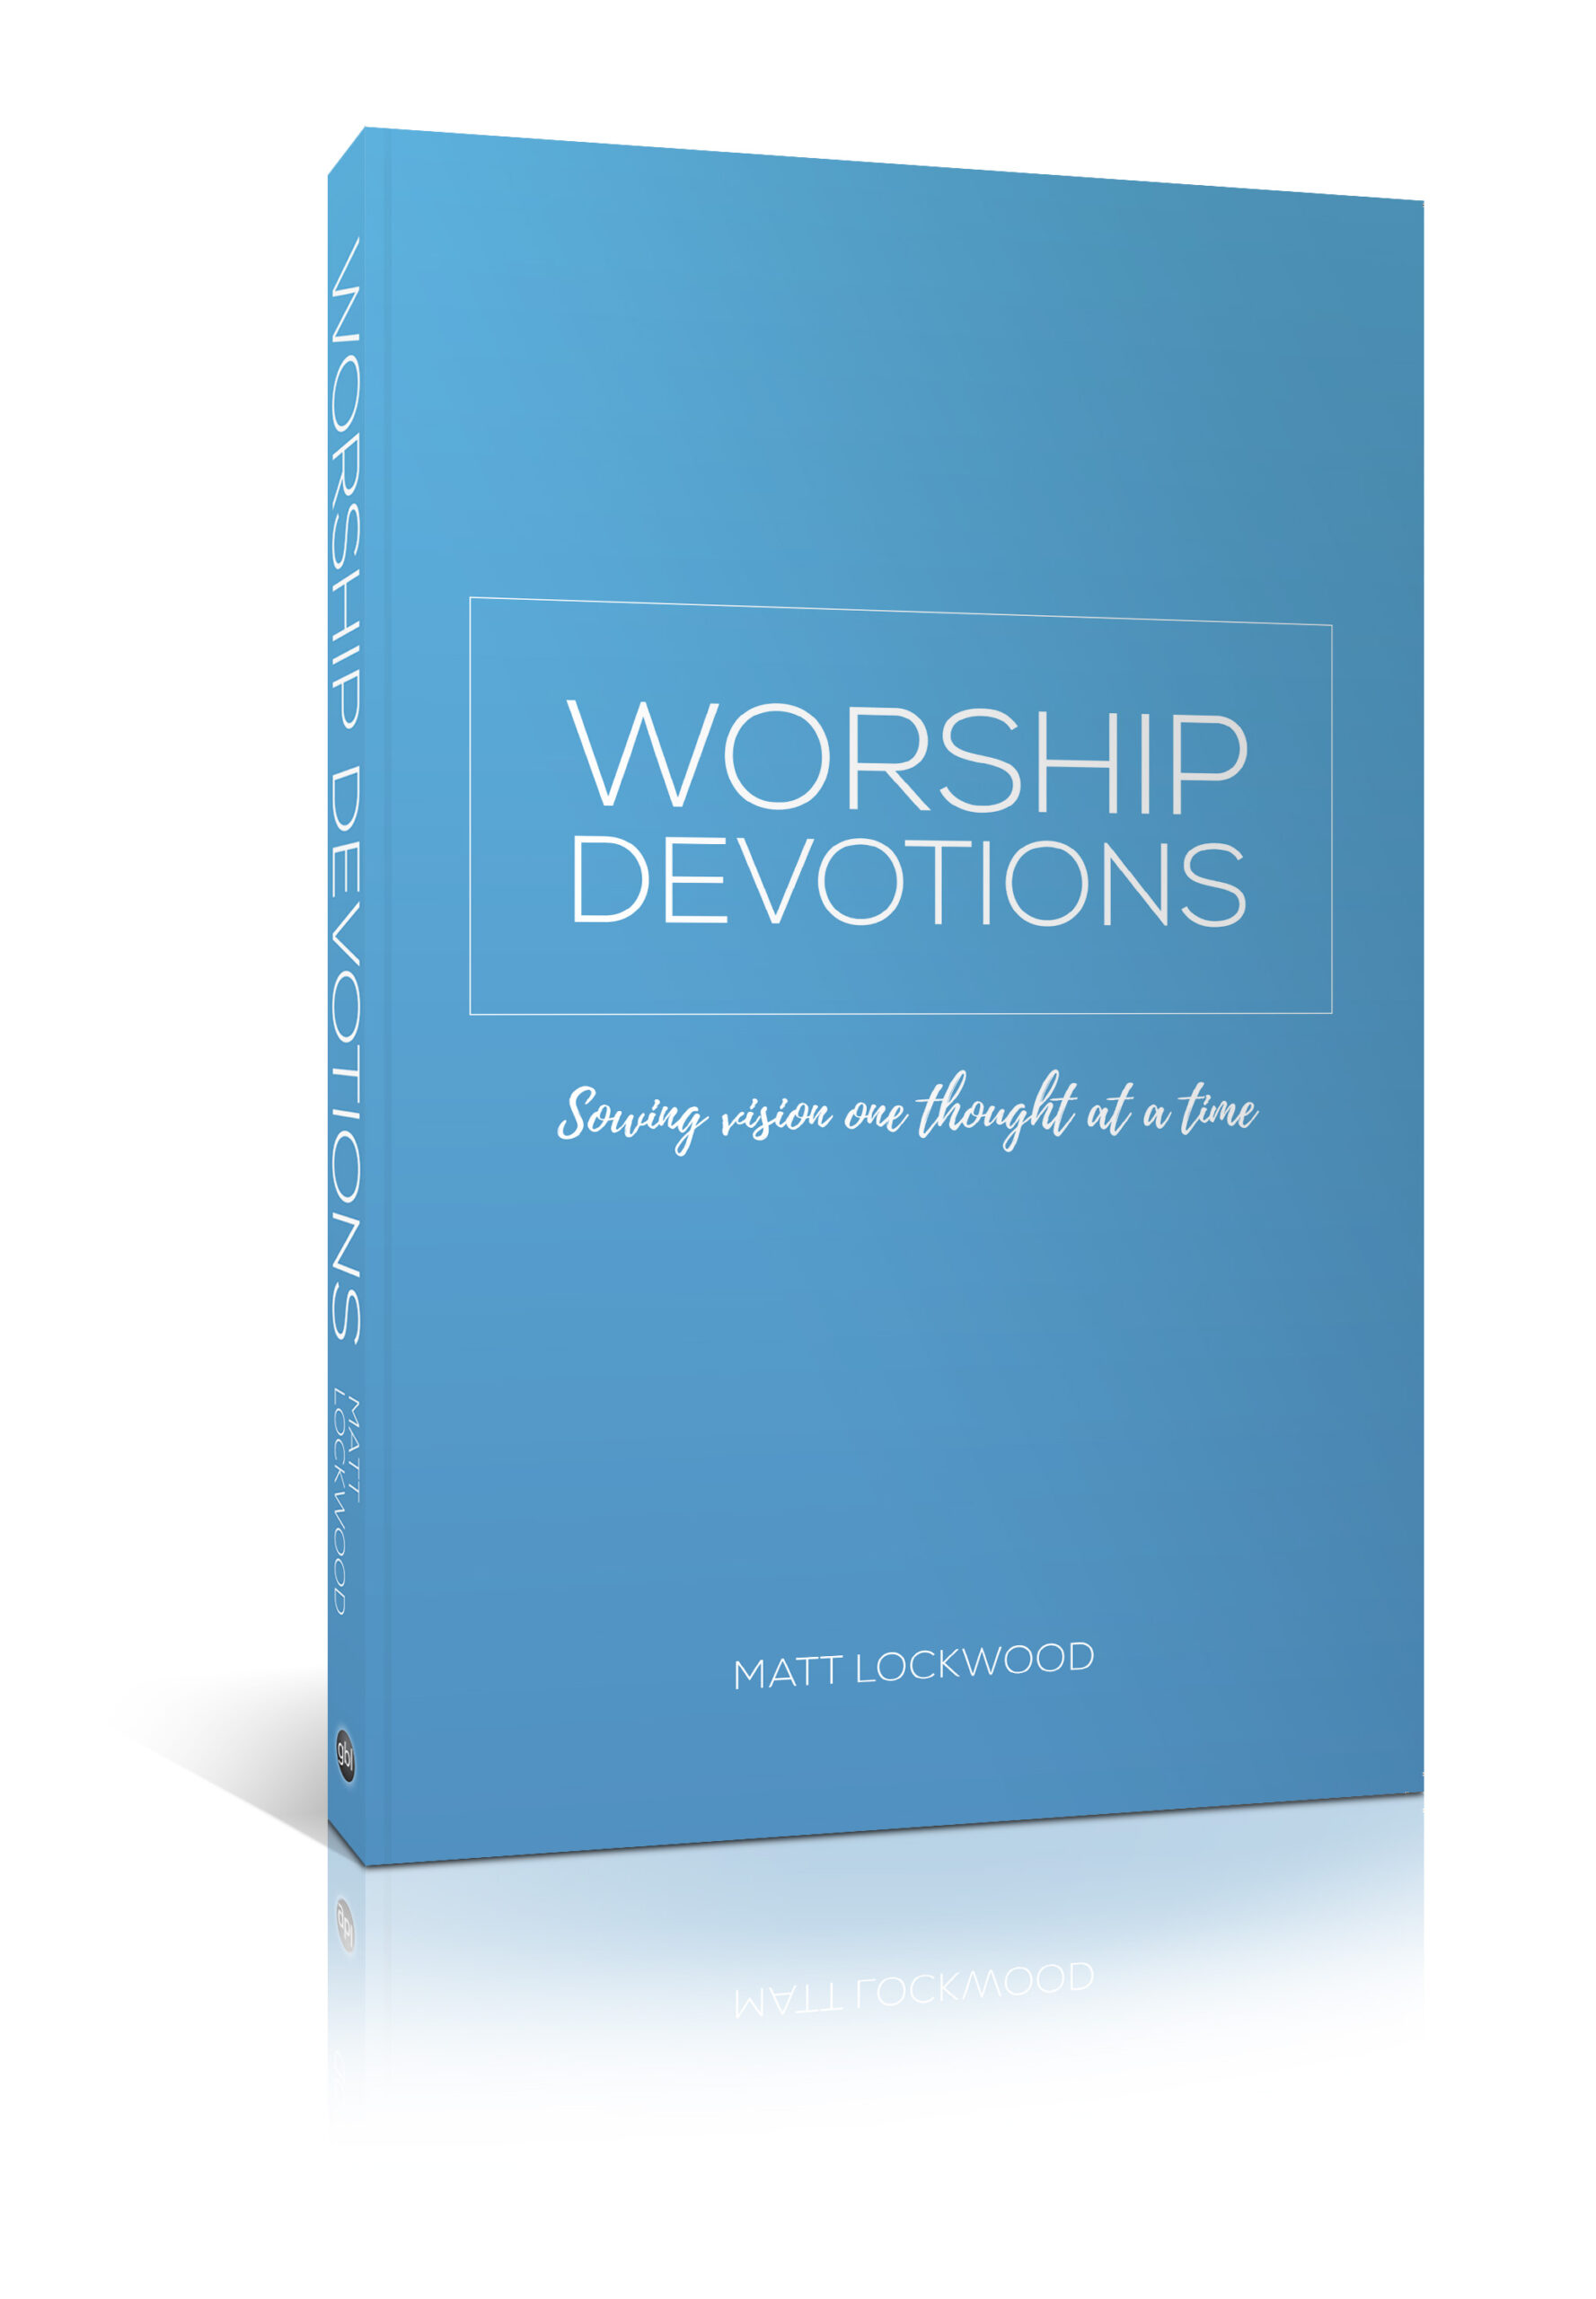 Worship Devotions, by Matt Lockwood